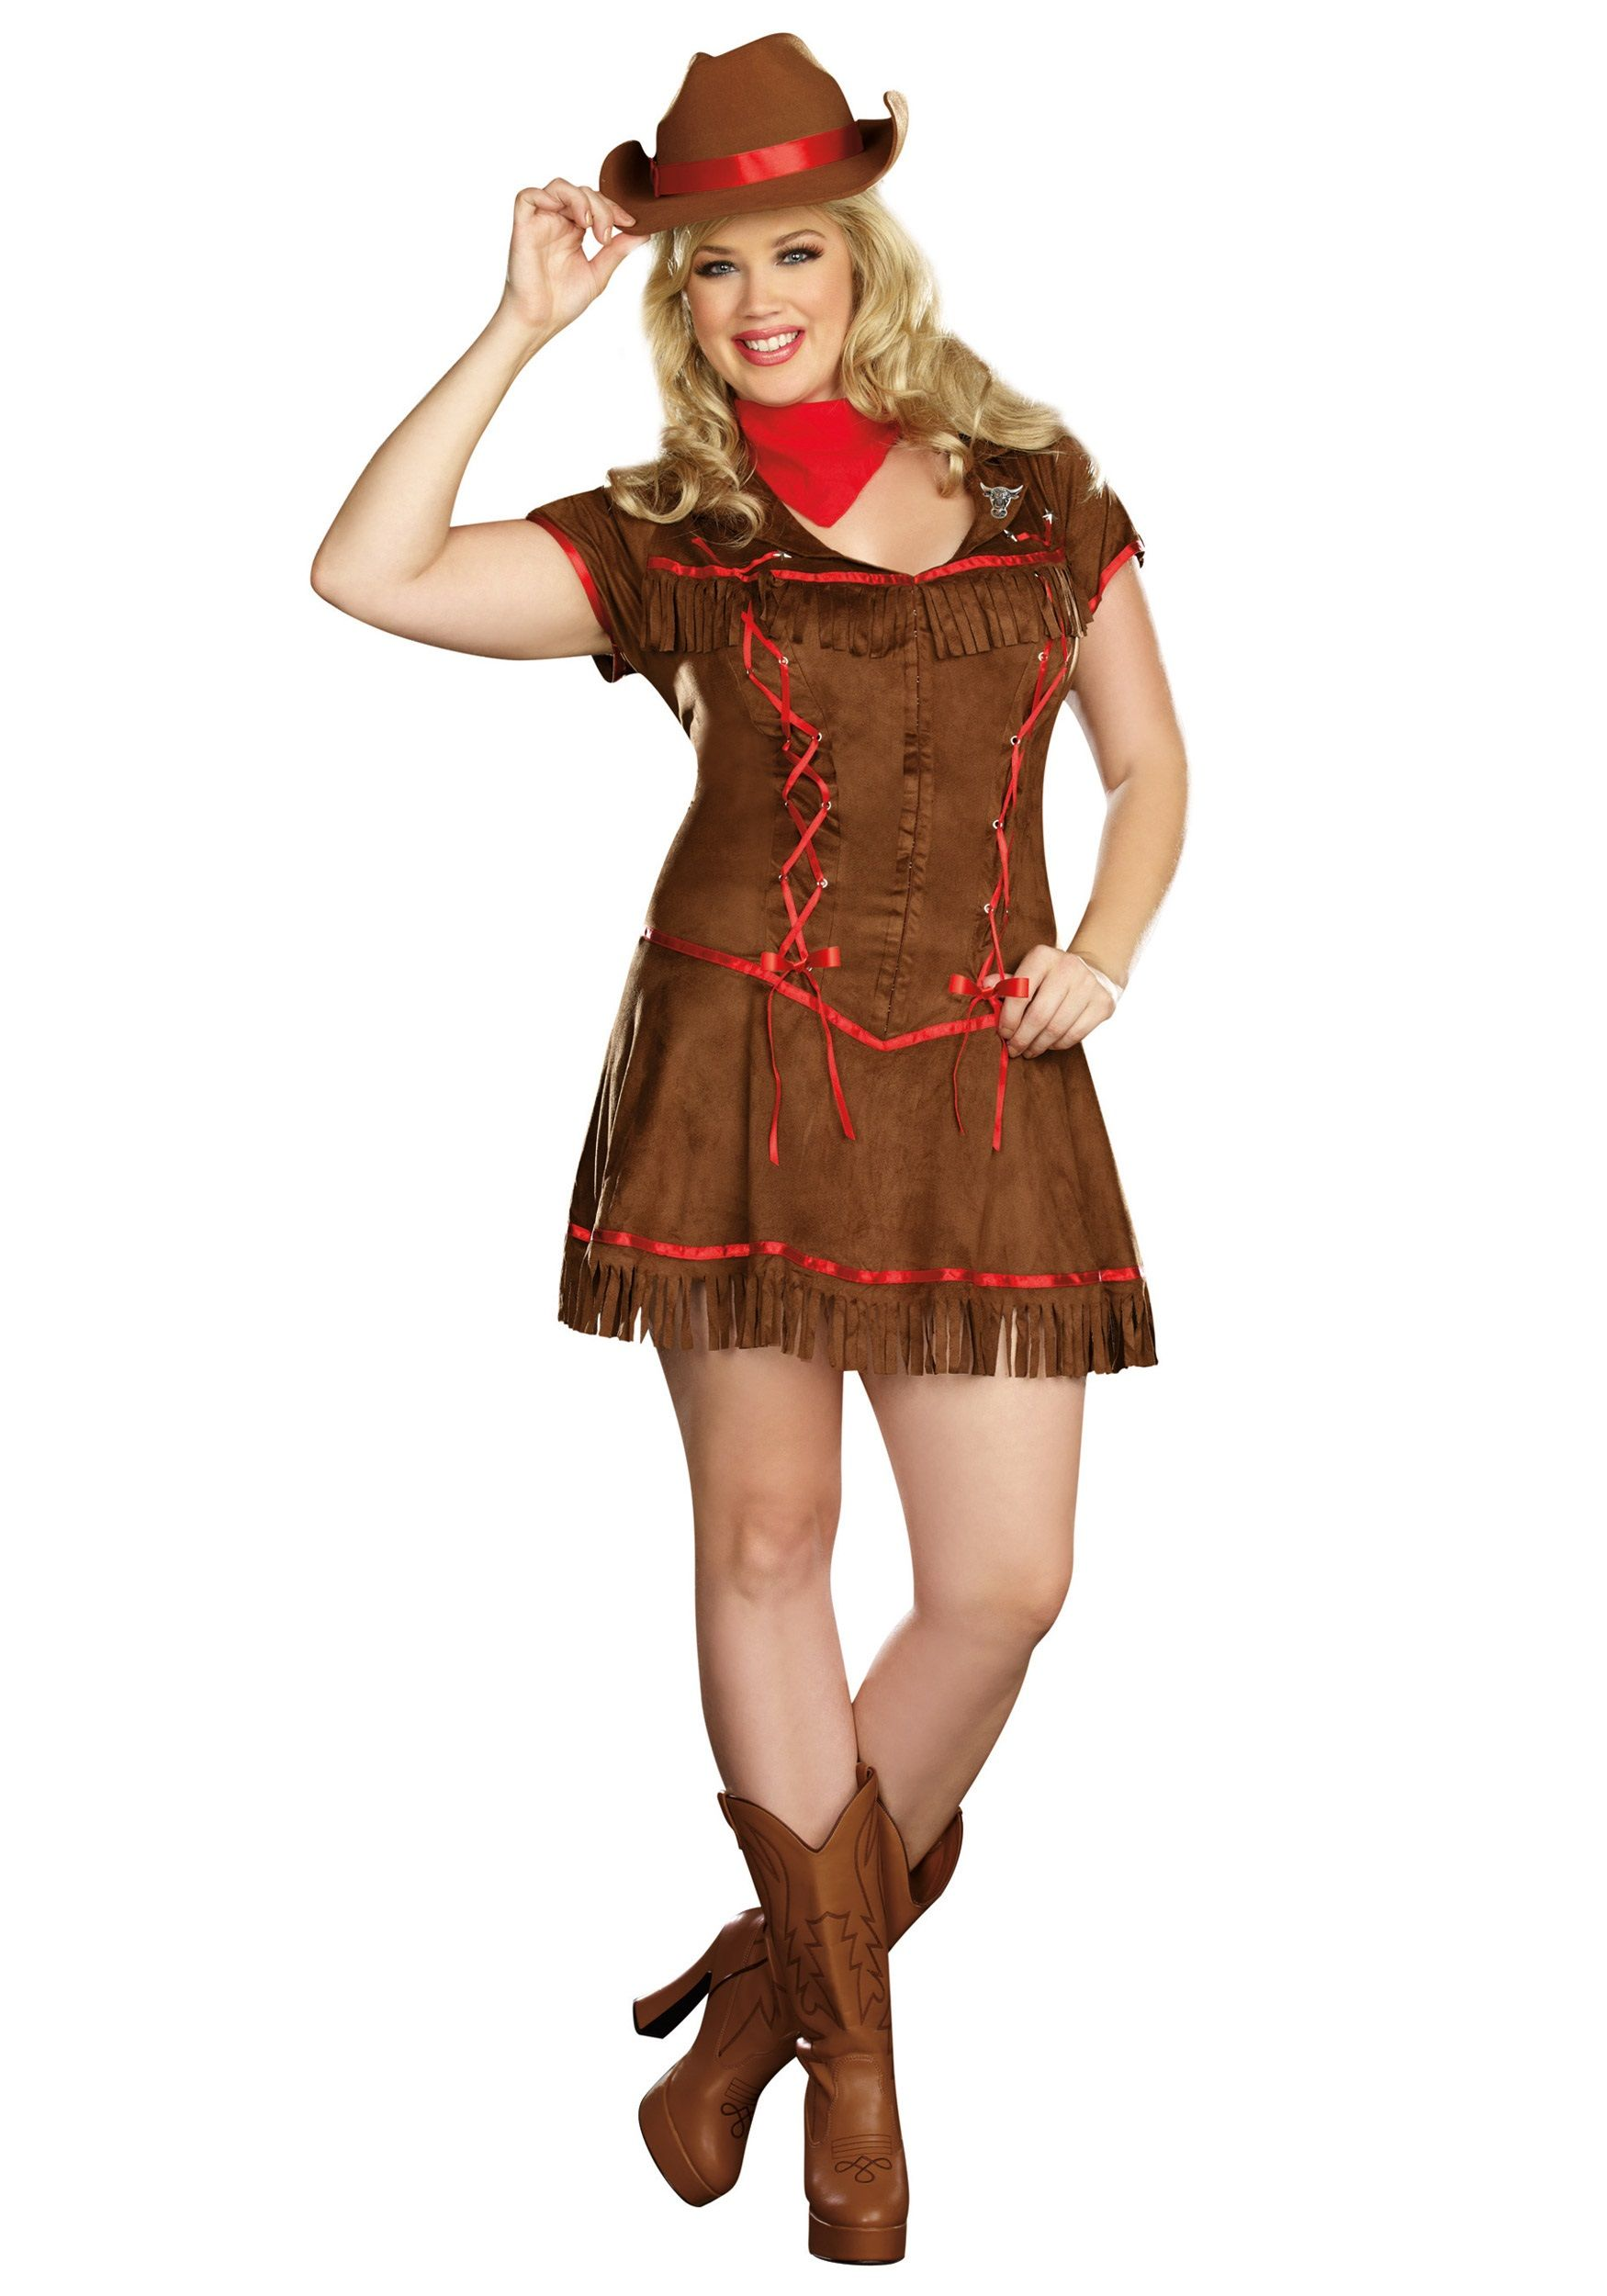 Cowgirl costume ideas for women indian costume ideas cowgirl cowgirl costume ideas for women indian costume ideas cowgirl costumes giddy up cowgirl plus costume solutioingenieria Gallery